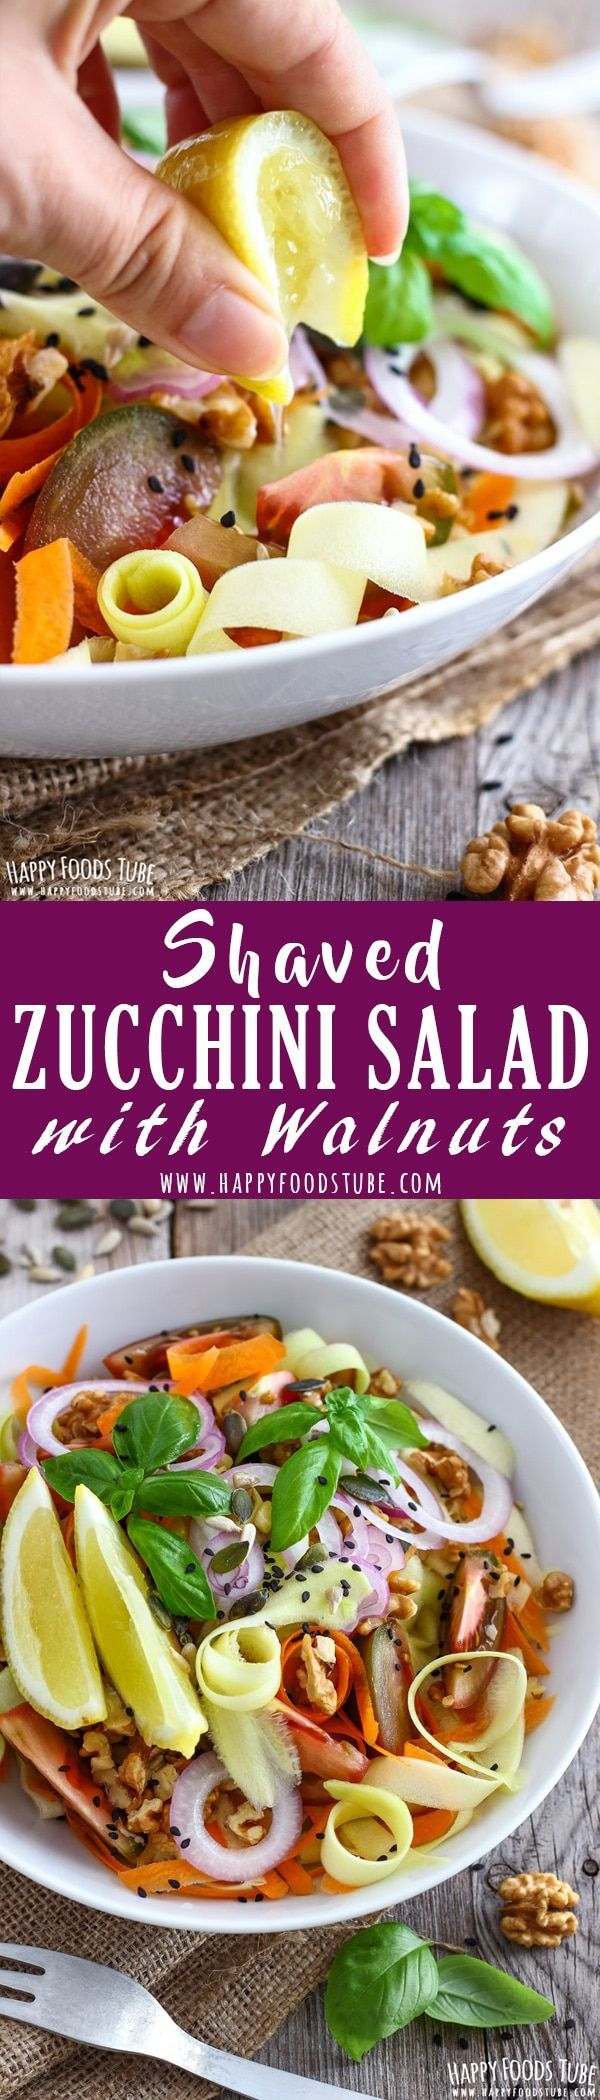 Shaved Zucchini Salad with Walnuts is a quick & easy side. Fresh vegetables, nuts and seeds are finished off with a drizzle of lemon juice. Healthy salad ideas. Vegetarian salad recipes via @happyfoodstube